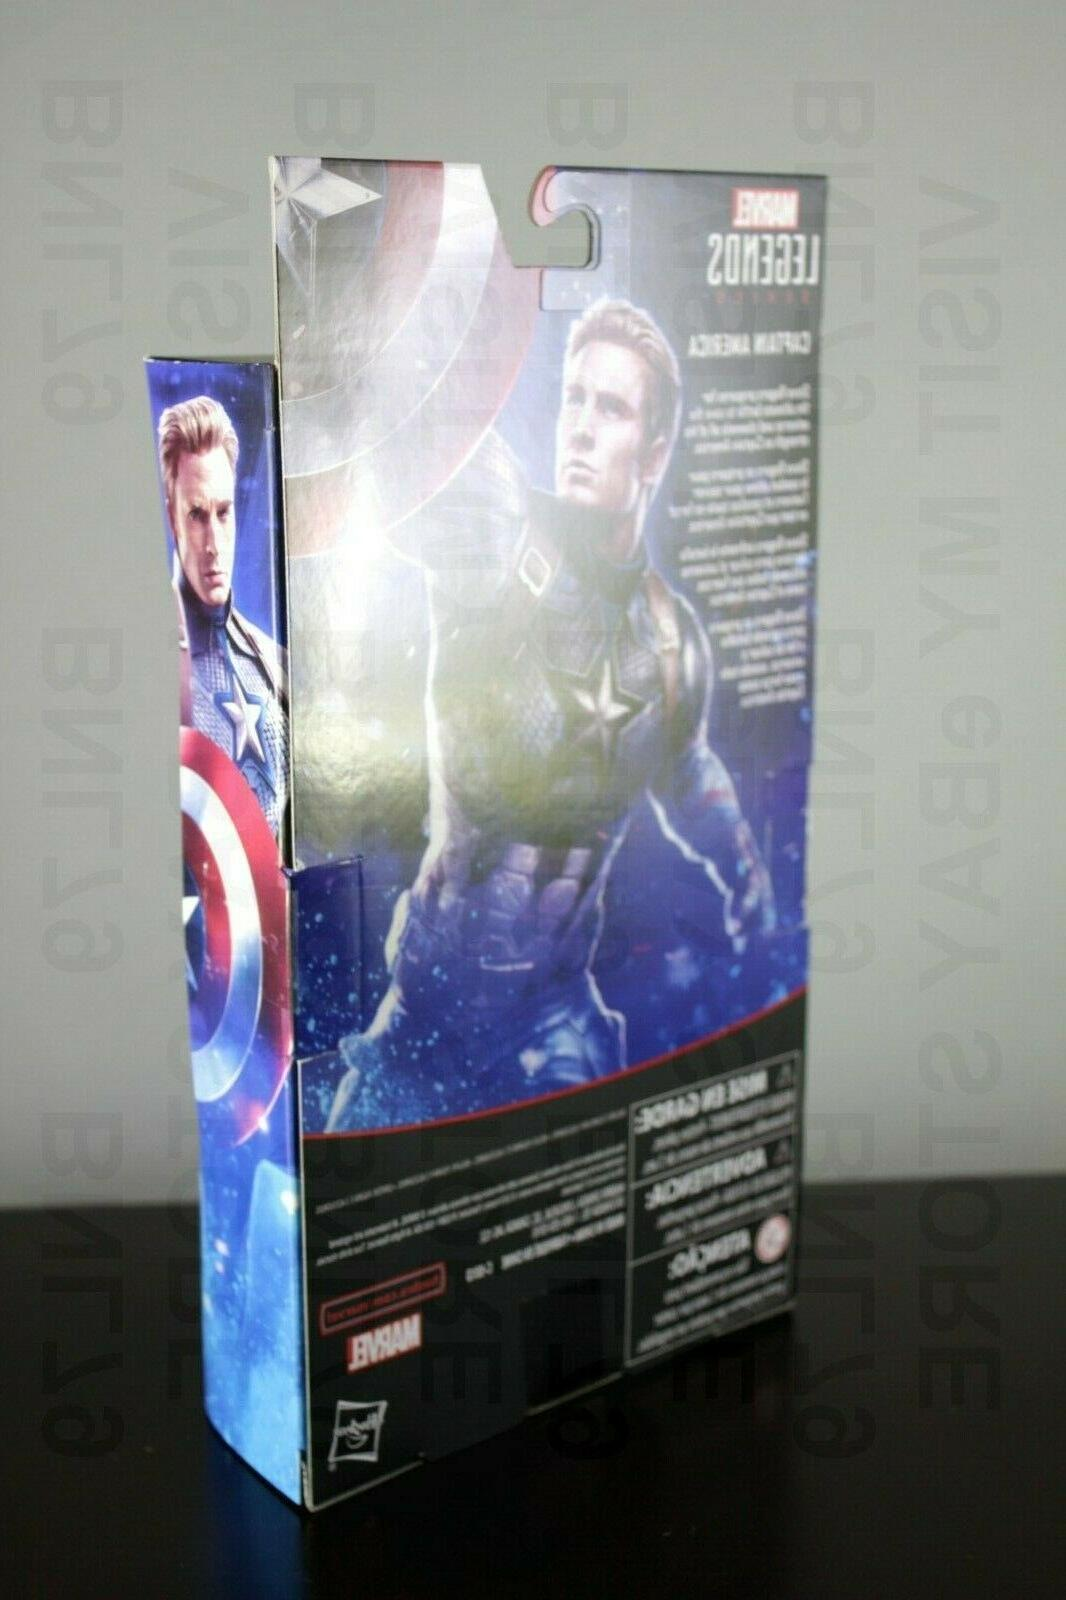 CAPTAIN AMERICA Exclusive Legends Endgame